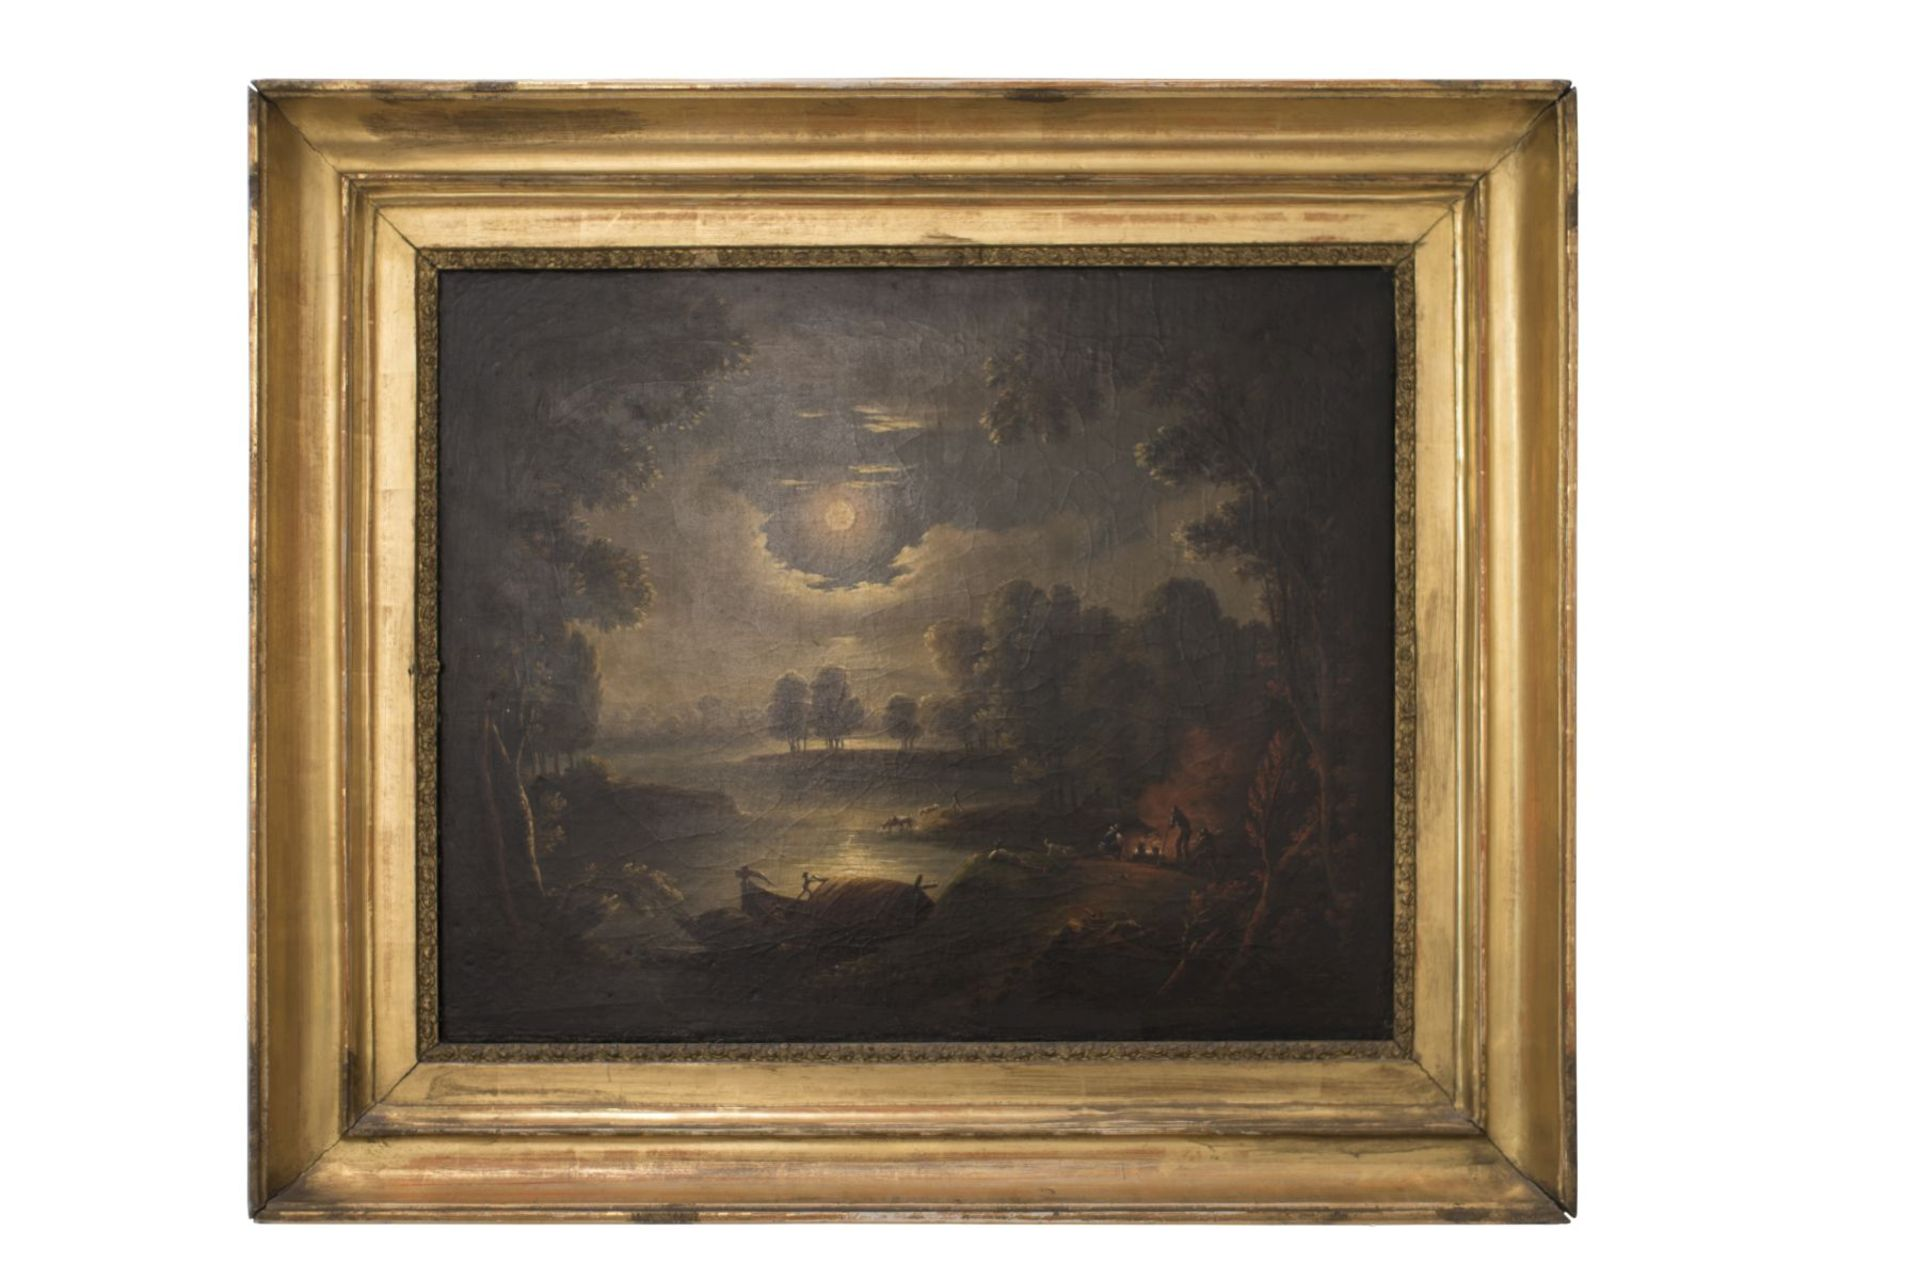 """Thèodore Rousseau (1812-1867) Circle, Barbizon """"French Landscape in the Full Moon"""" - Image 6 of 6"""